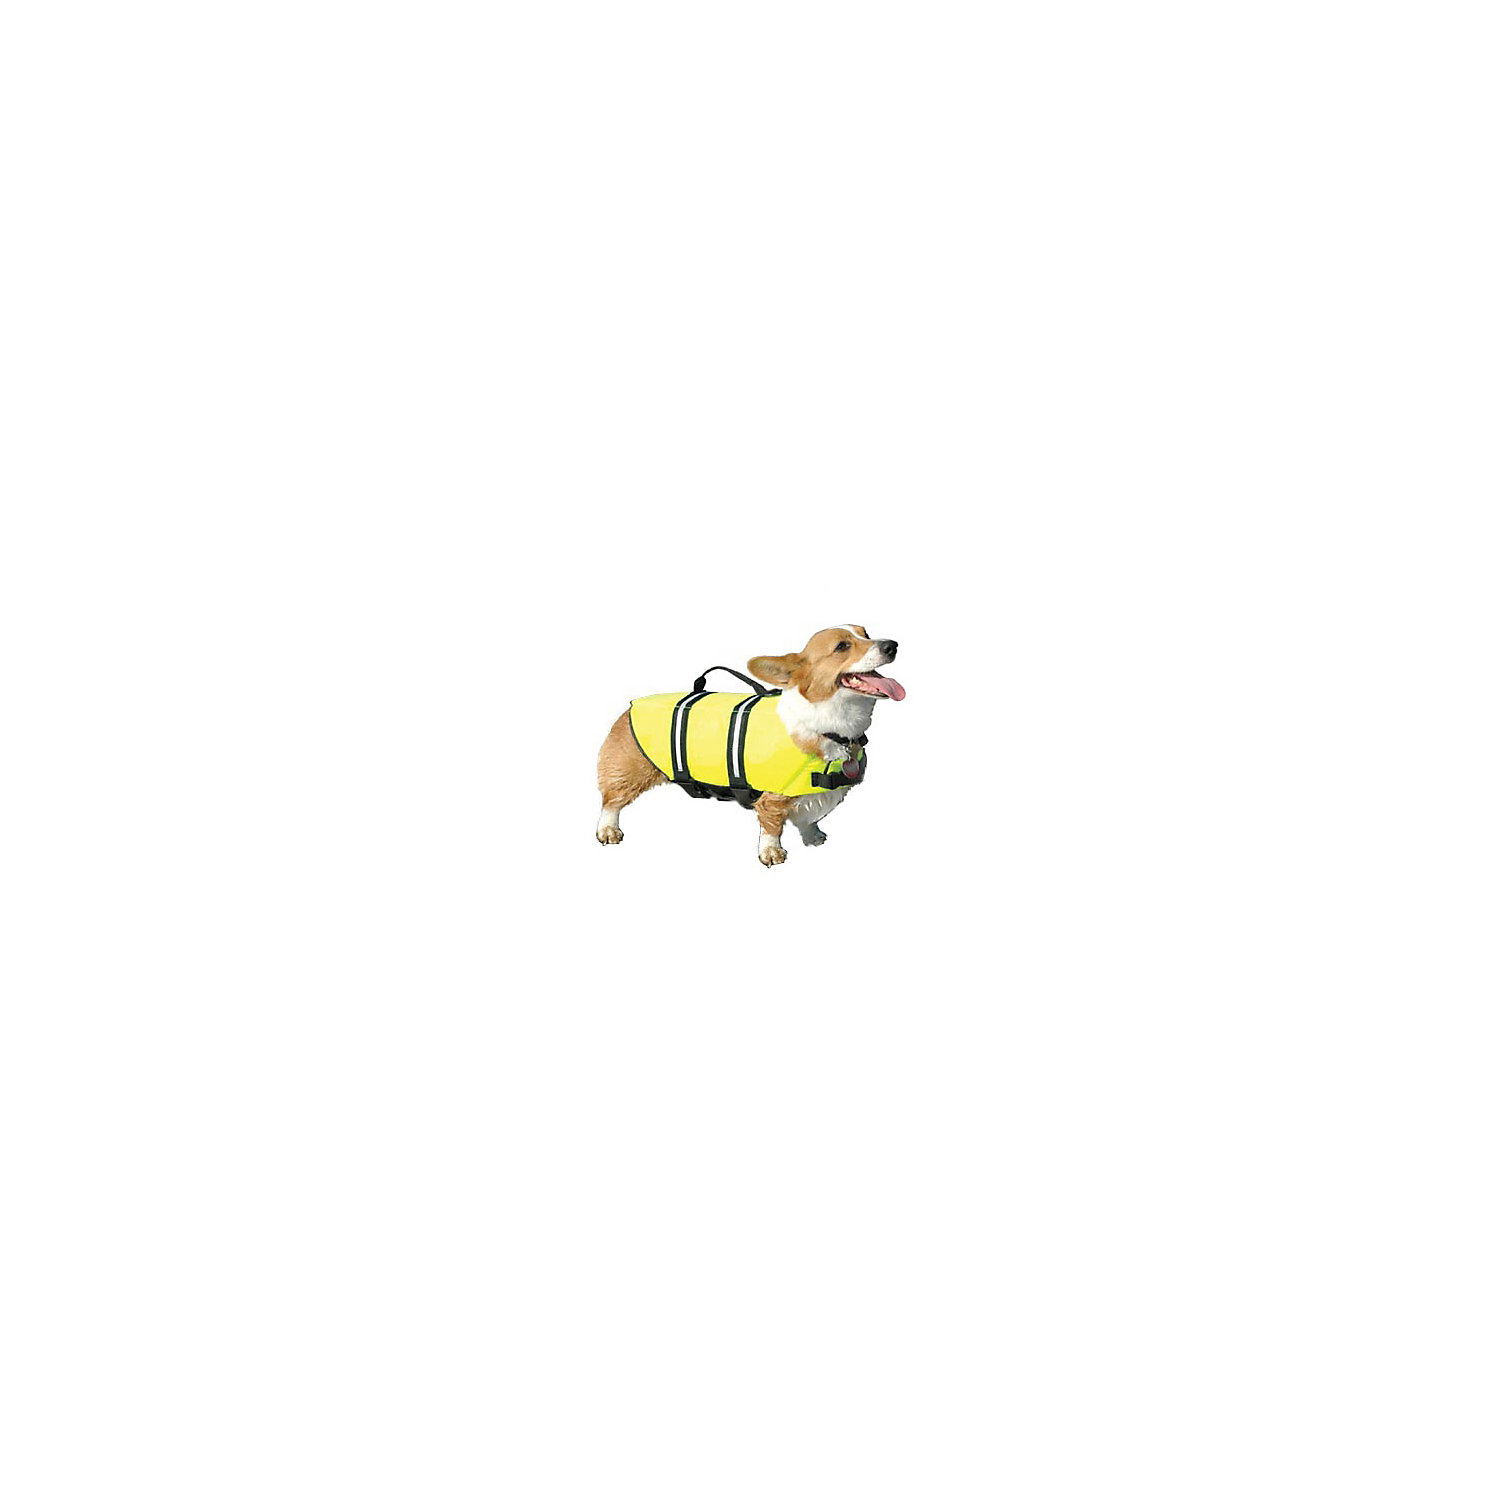 Paws Aboard Doggy Life Jacket In Yellow Medium